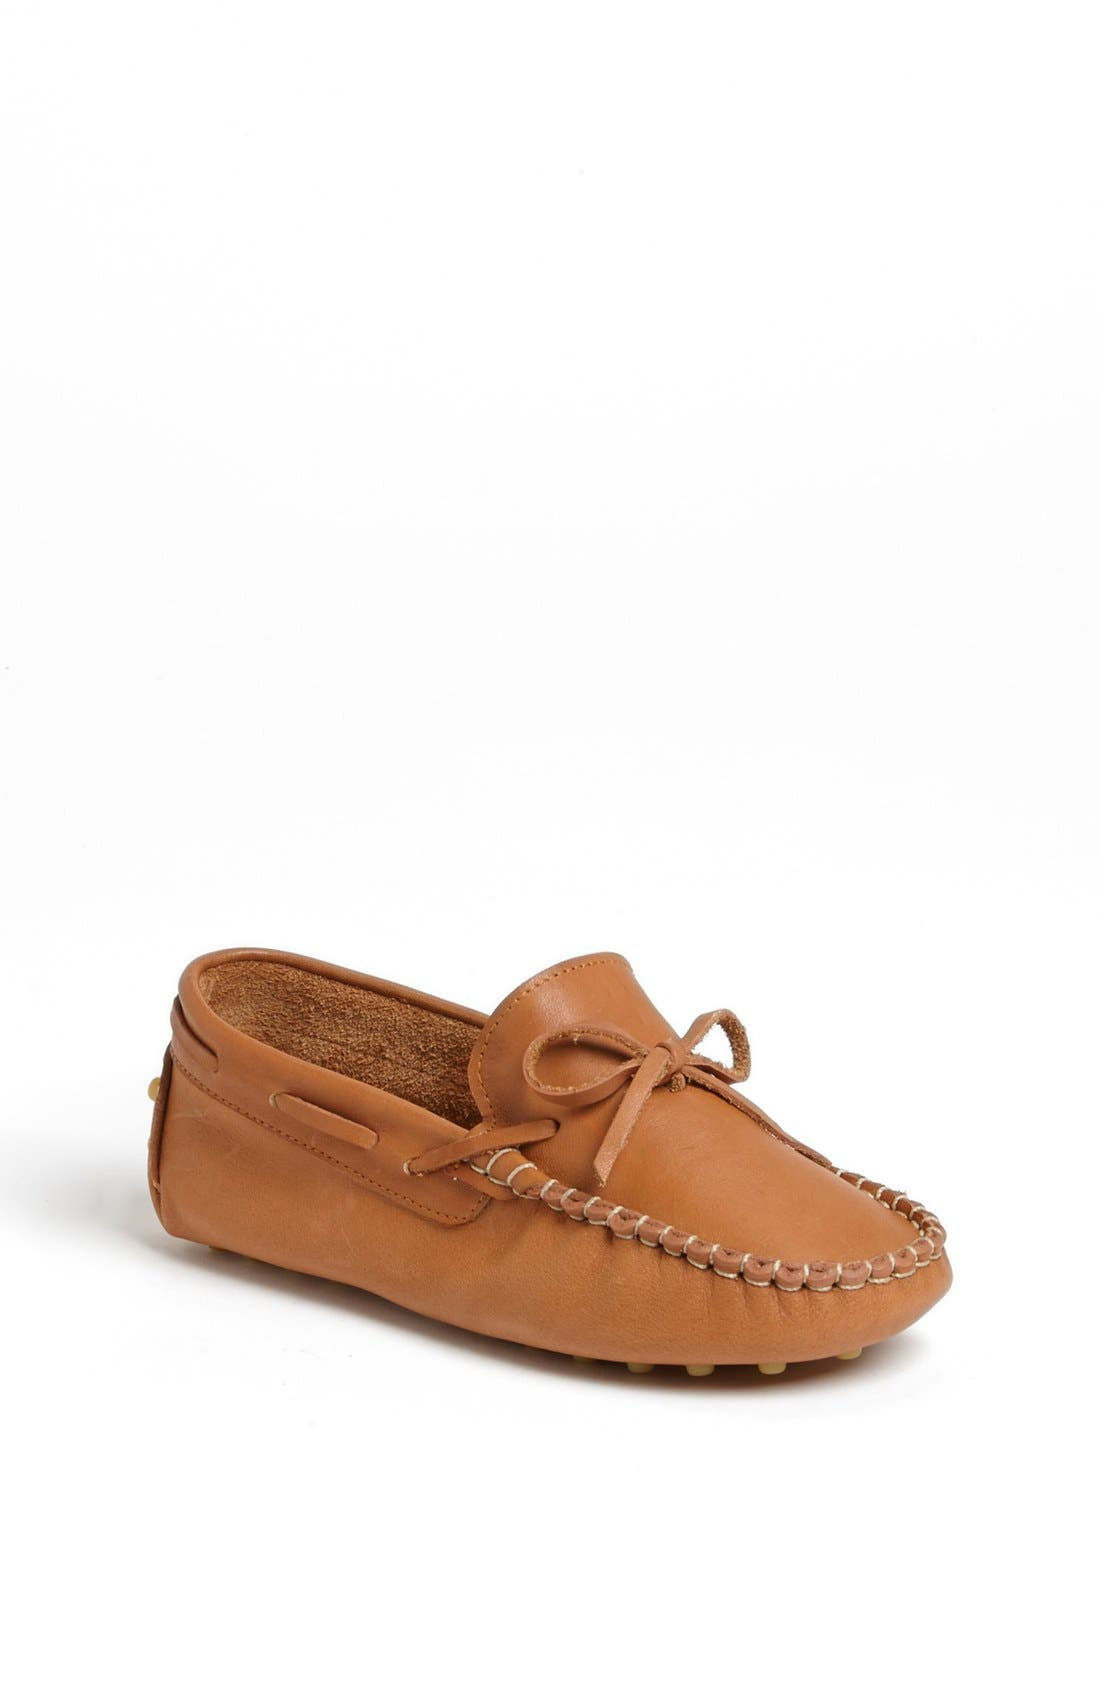 ELEPHANTITO,                             Driver Loafer,                             Main thumbnail 1, color,                             219